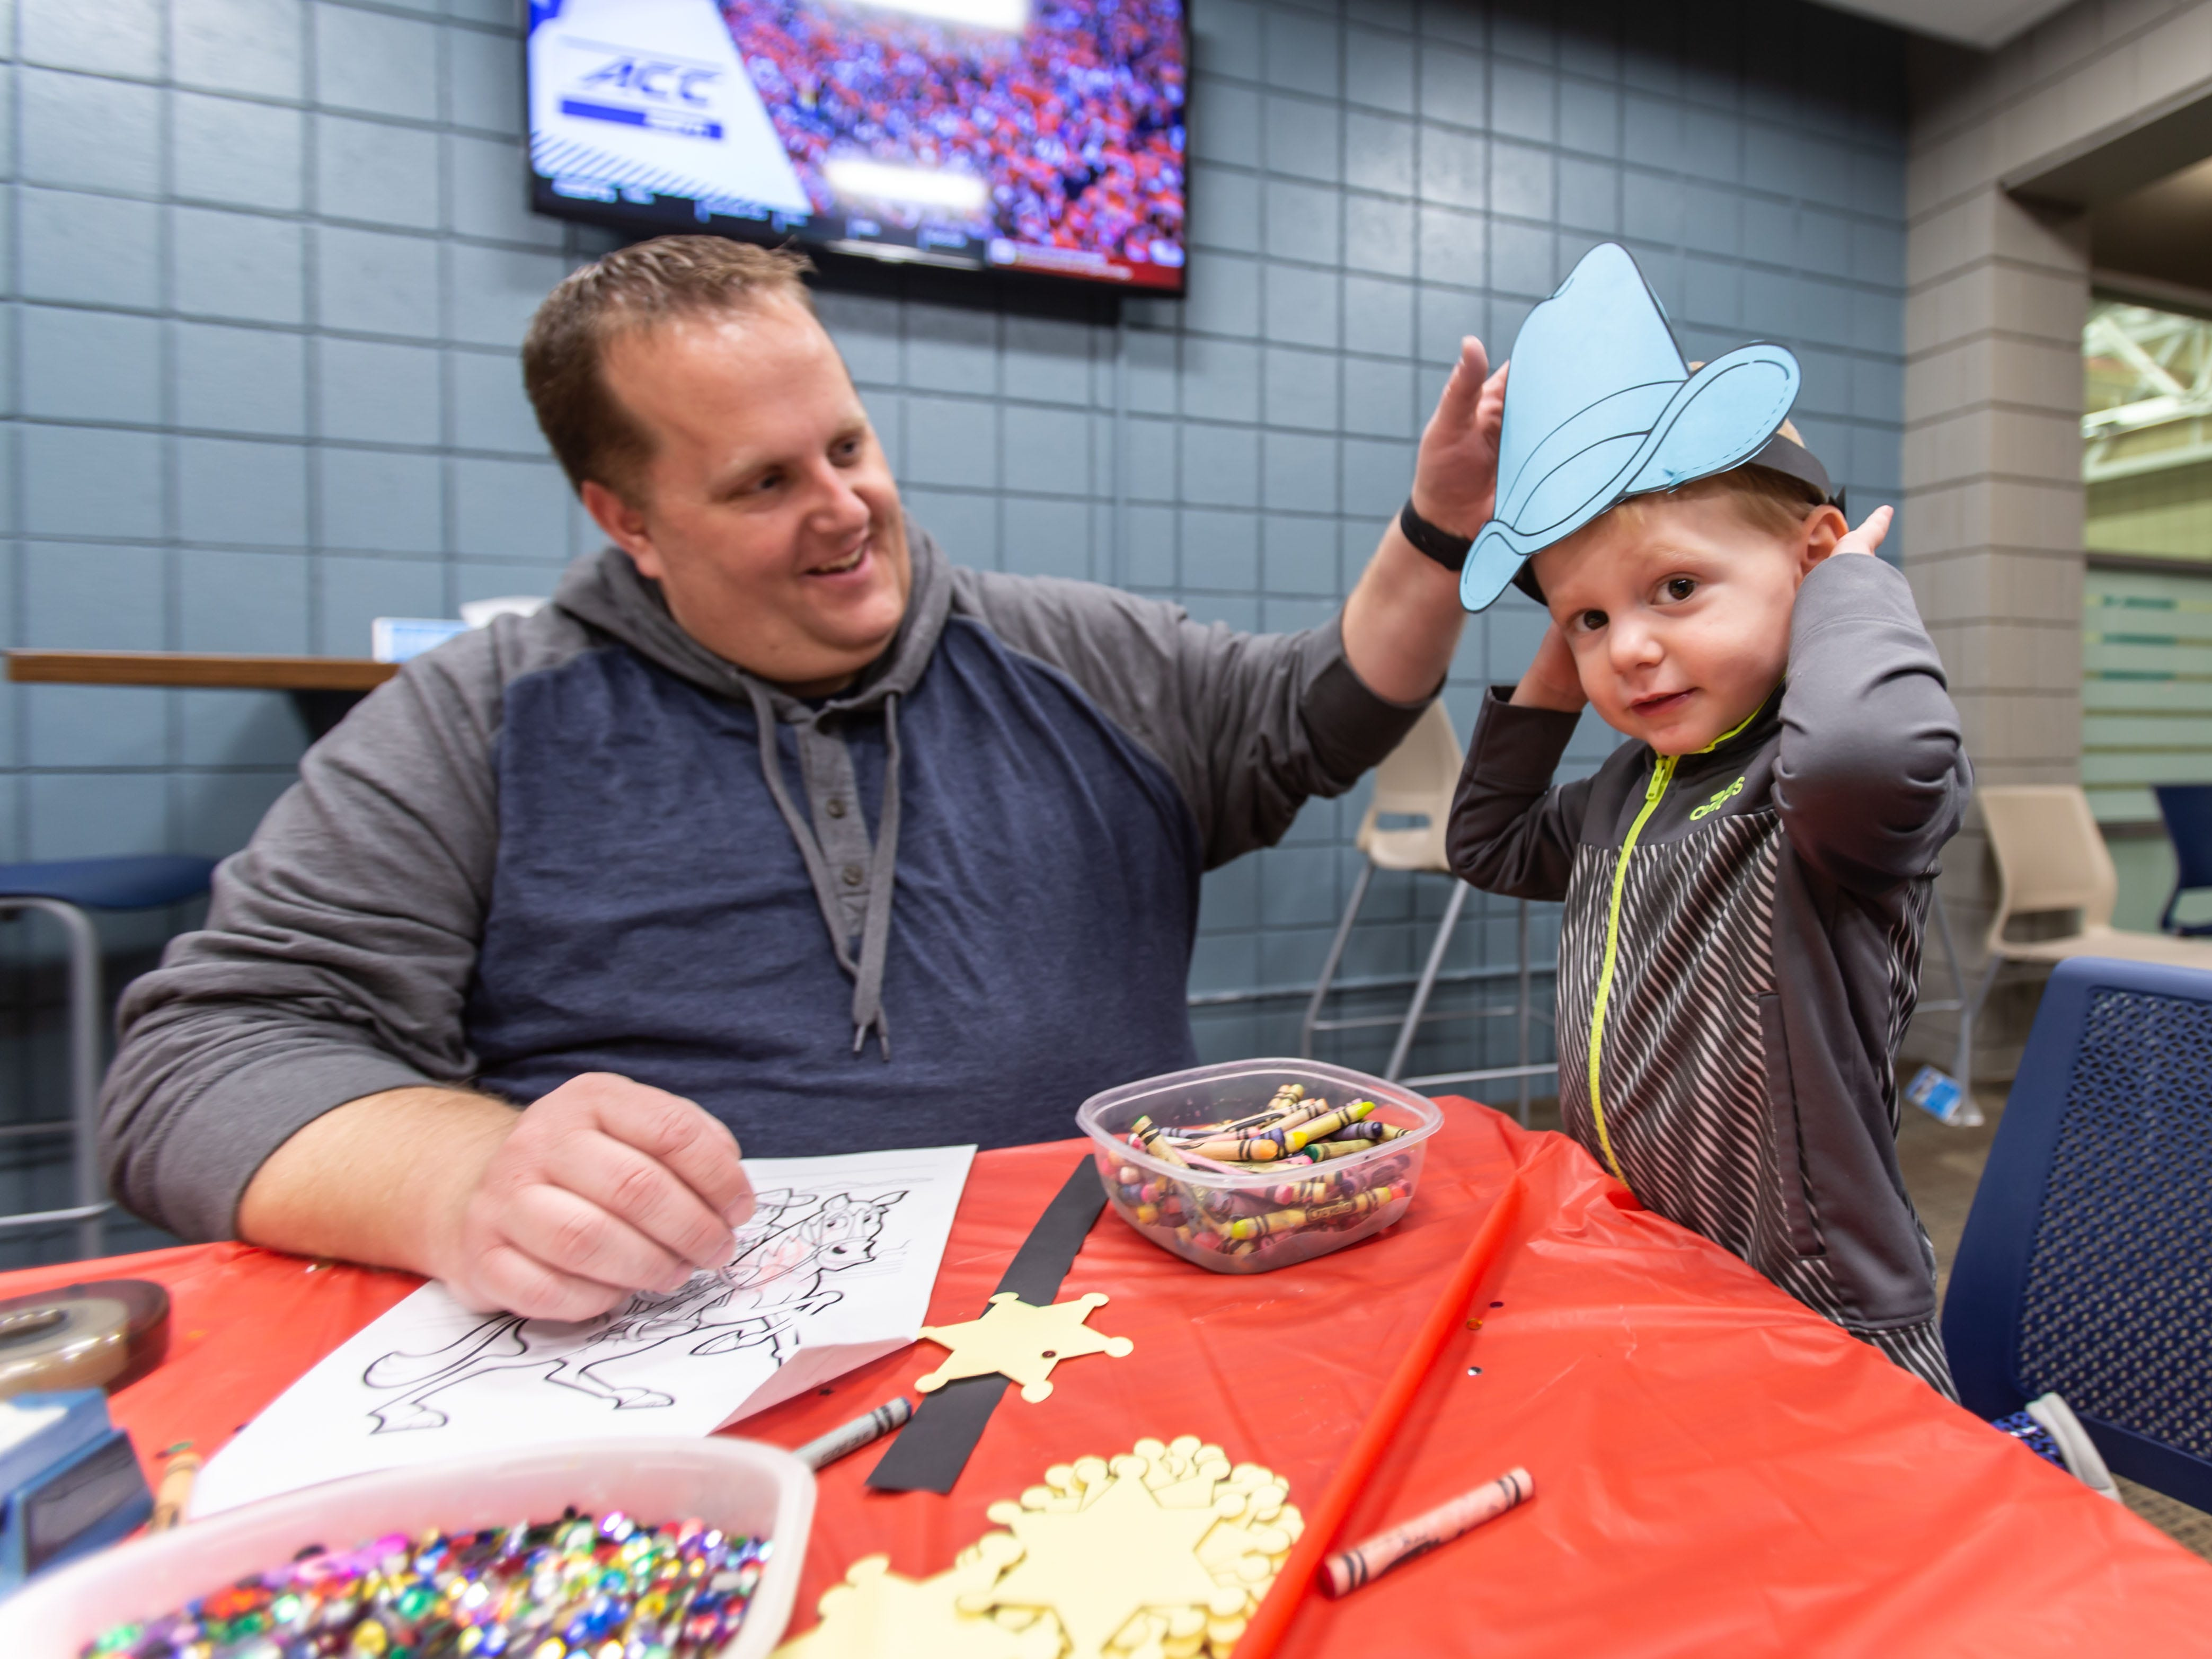 Three-year-old Logan Husslein of Germantown tries on a cowboy hat he made with his dad Jason during the Hometown Hoedown NEA Big-Read Kickoff Event at the Tri County YMCA in Menomonee Falls on Saturday, Feb. 23, 2019. The event featured live music, food, games, and western themed activities for the whole family.